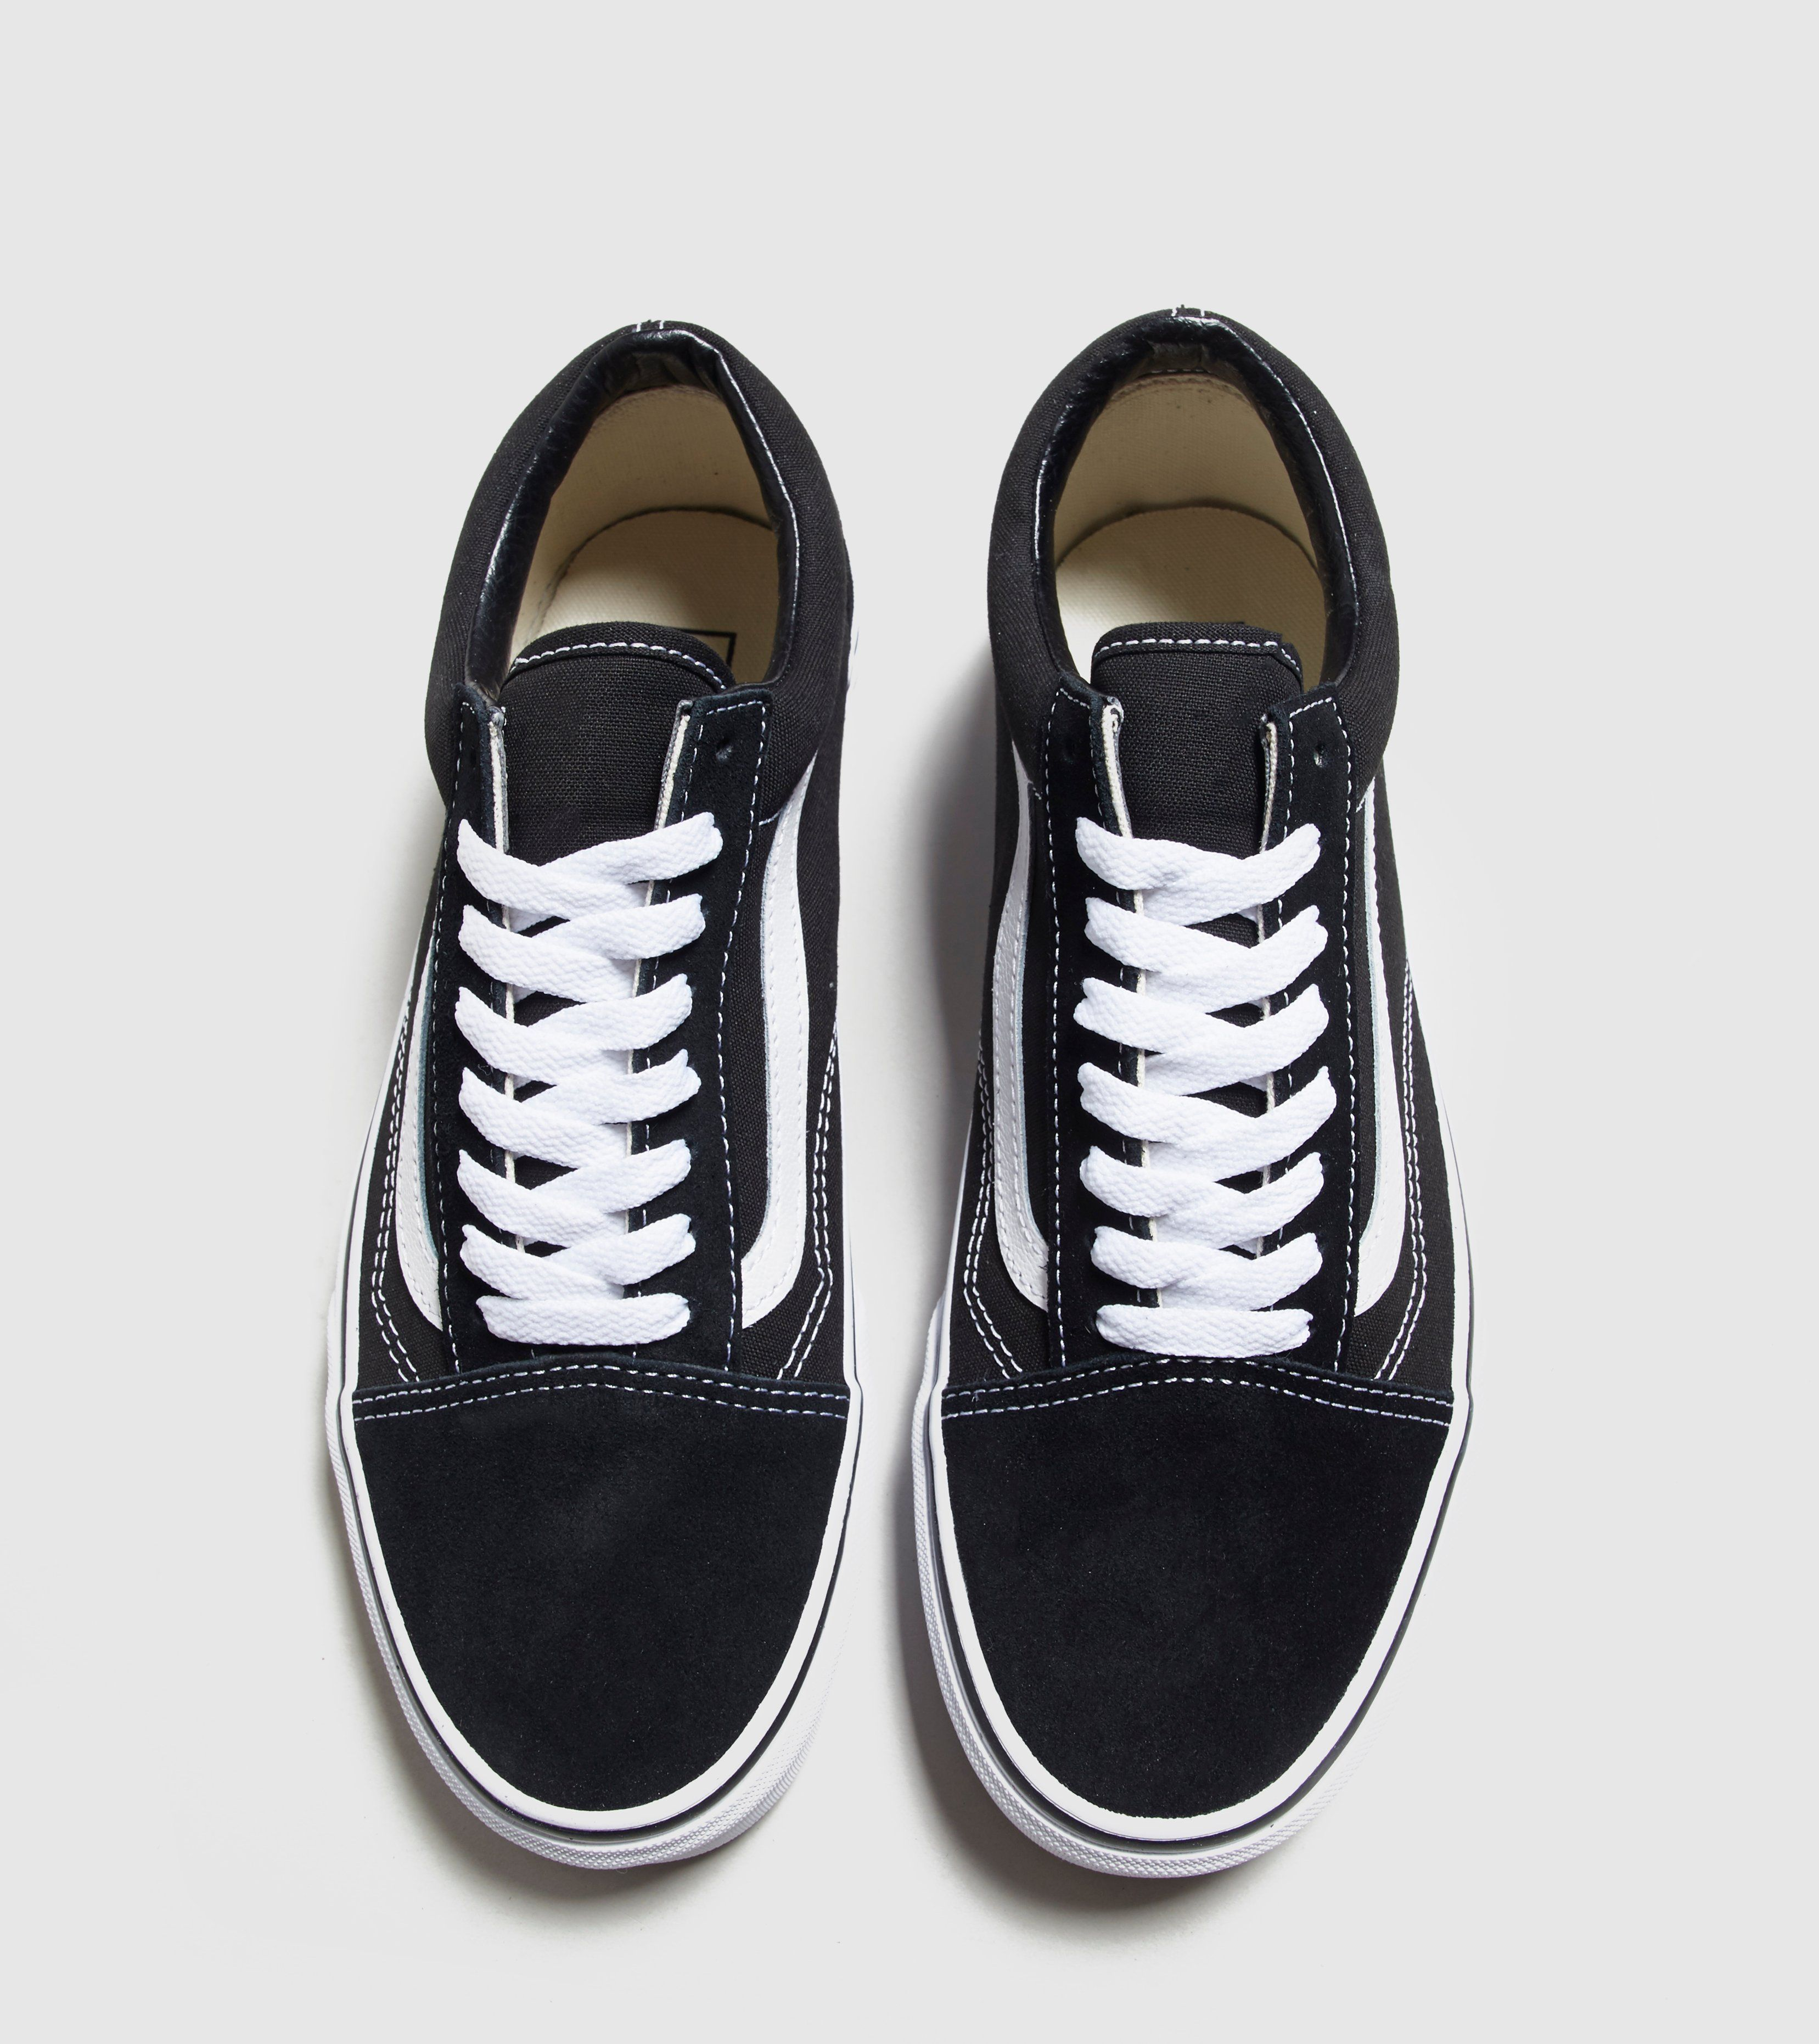 old skool vans uk sizing